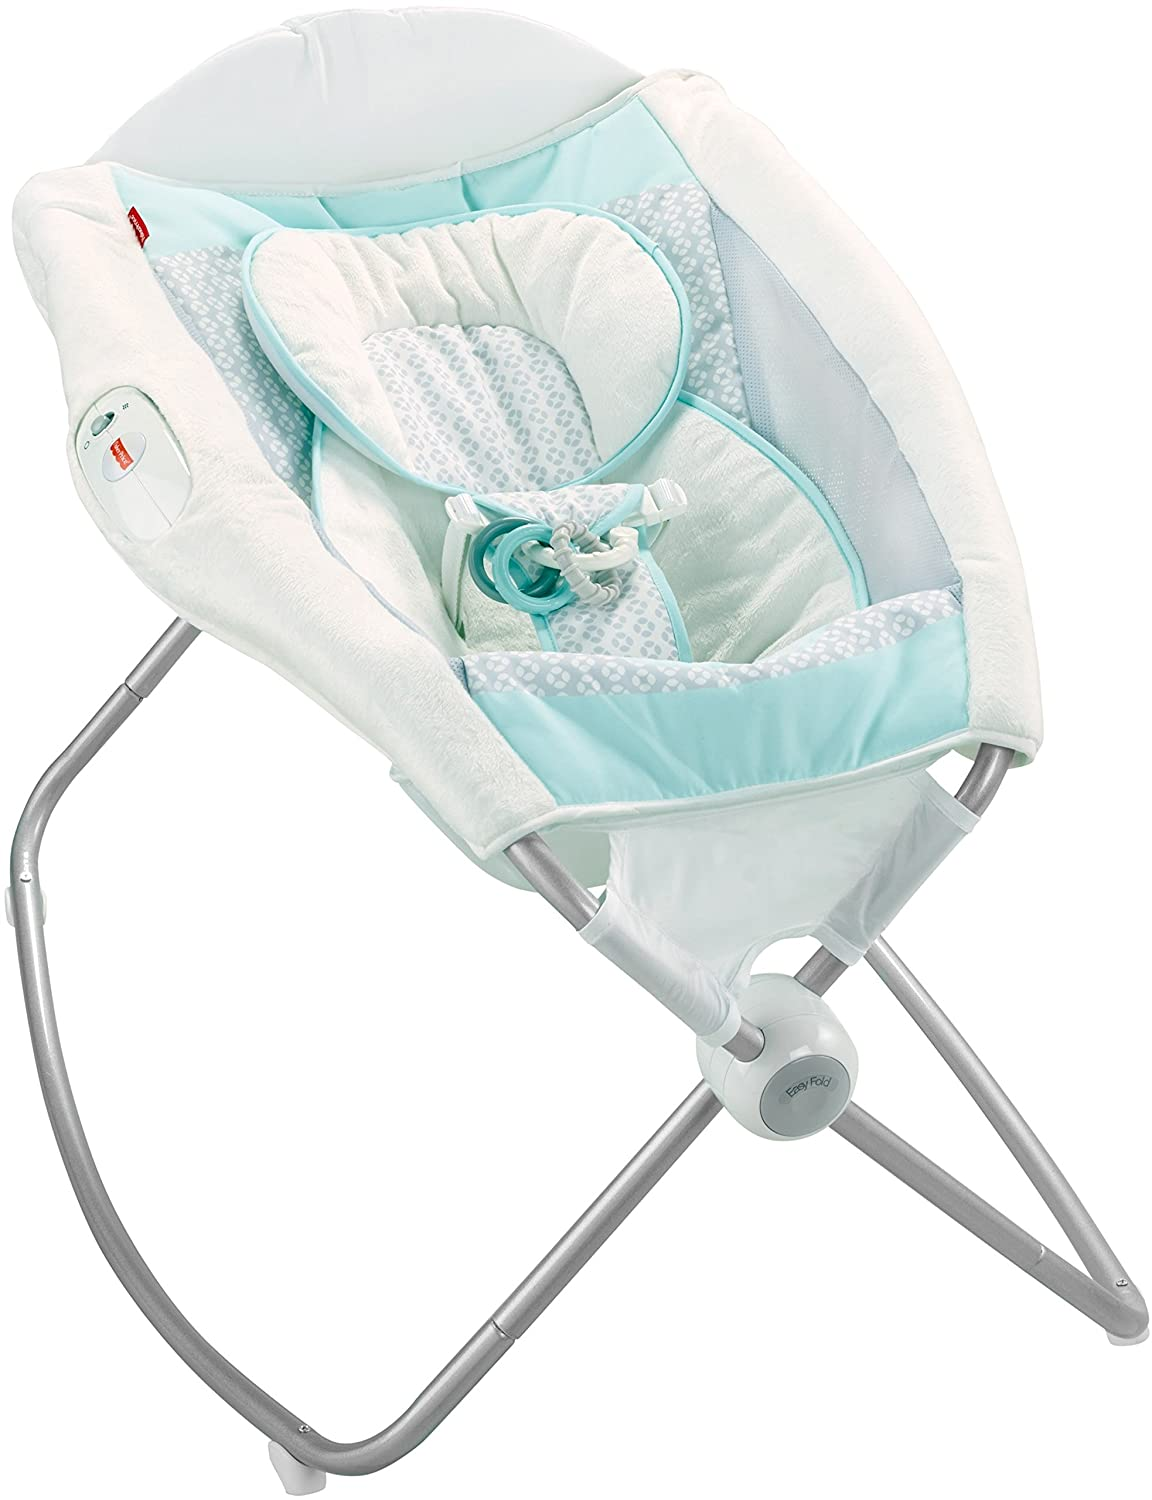 Fisher-Price Deluxe Rock 'n Play Sleeper, Sweet Snugapuppy Dreams DTG87